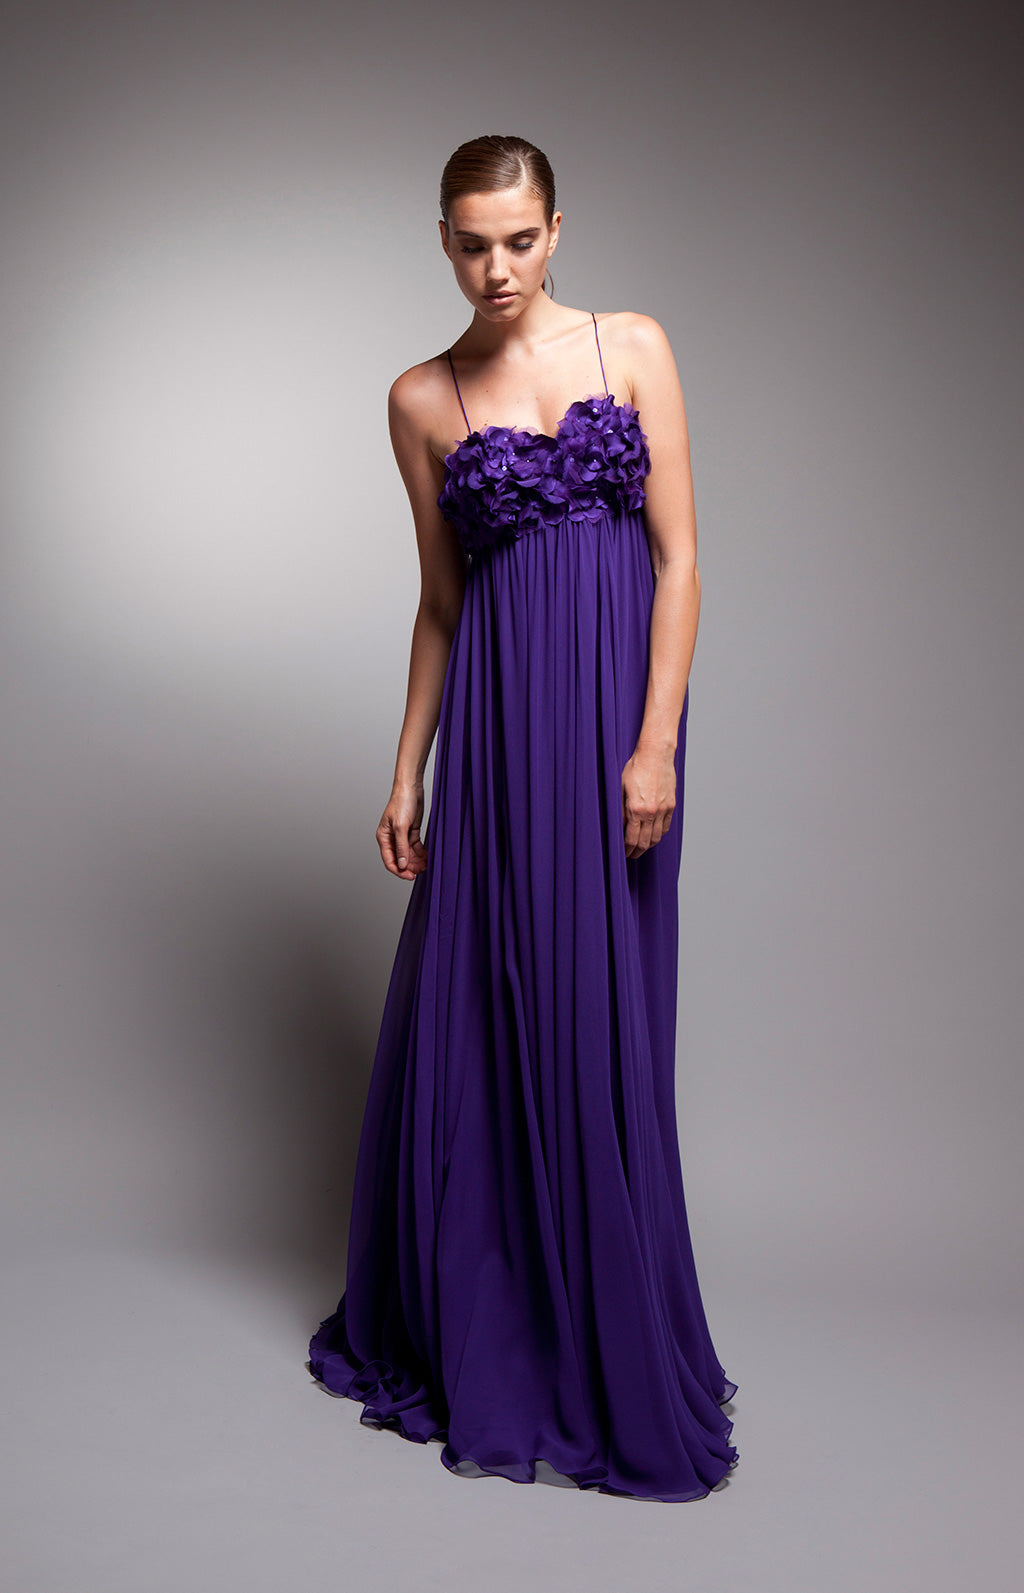 Violetta (Sale) - Vivid purple gown